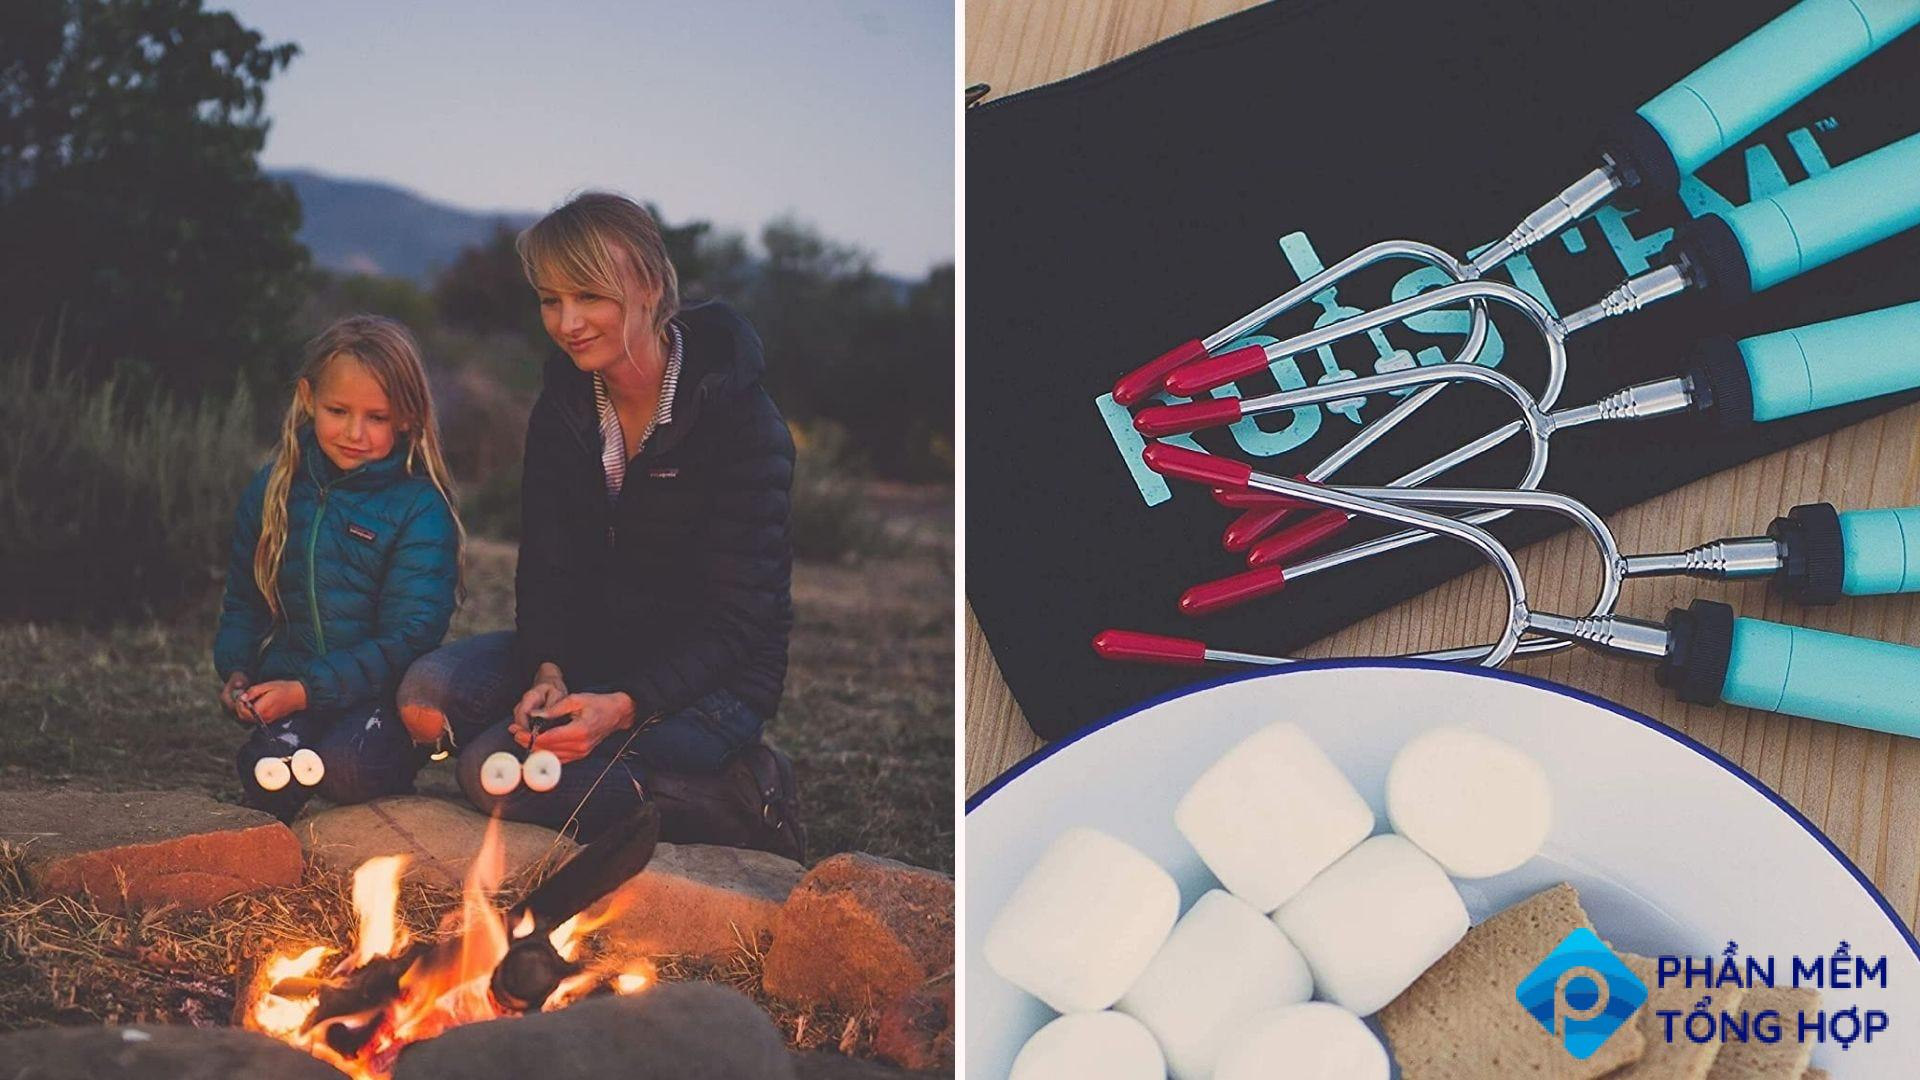 Two images featuring the Jolly Green telescoping marshmallow sticks. The left images features a woman and her daughter using the sticks to roast marshmallows, and the right image features the package of sticks alongside of a plate of all the fixings for s'mores.